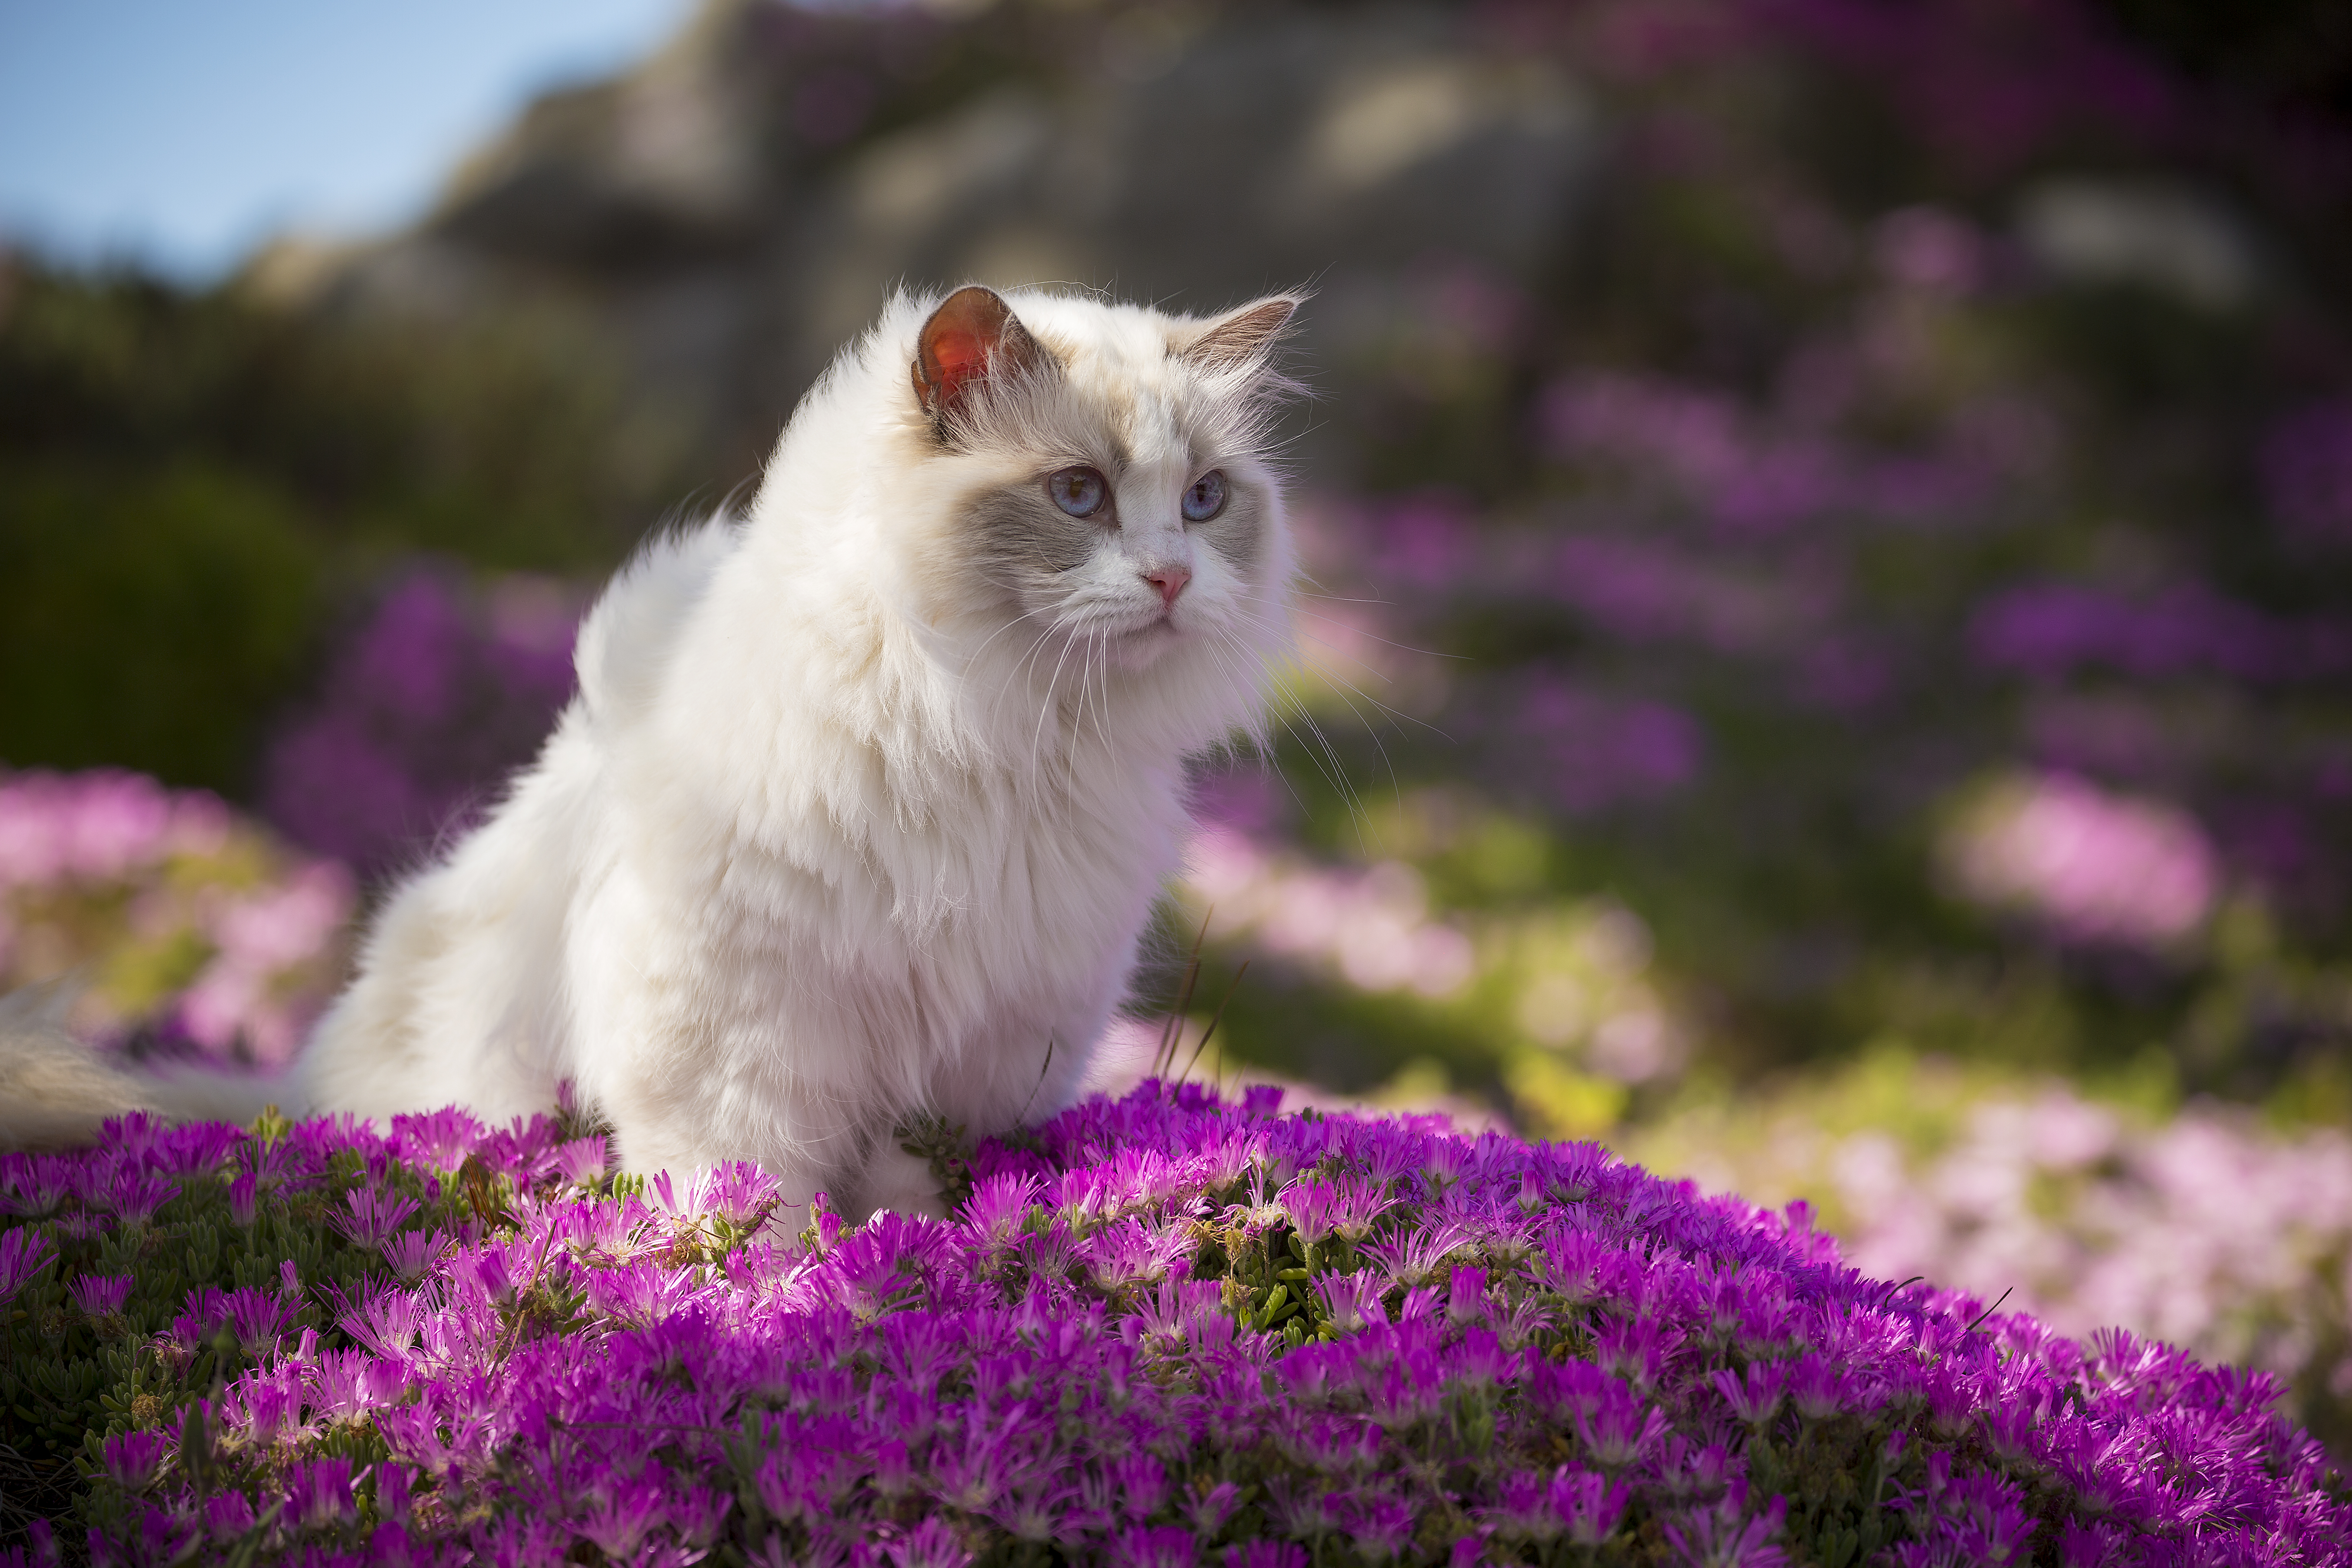 Majestic ragdoll cat standing in a field of flowers.